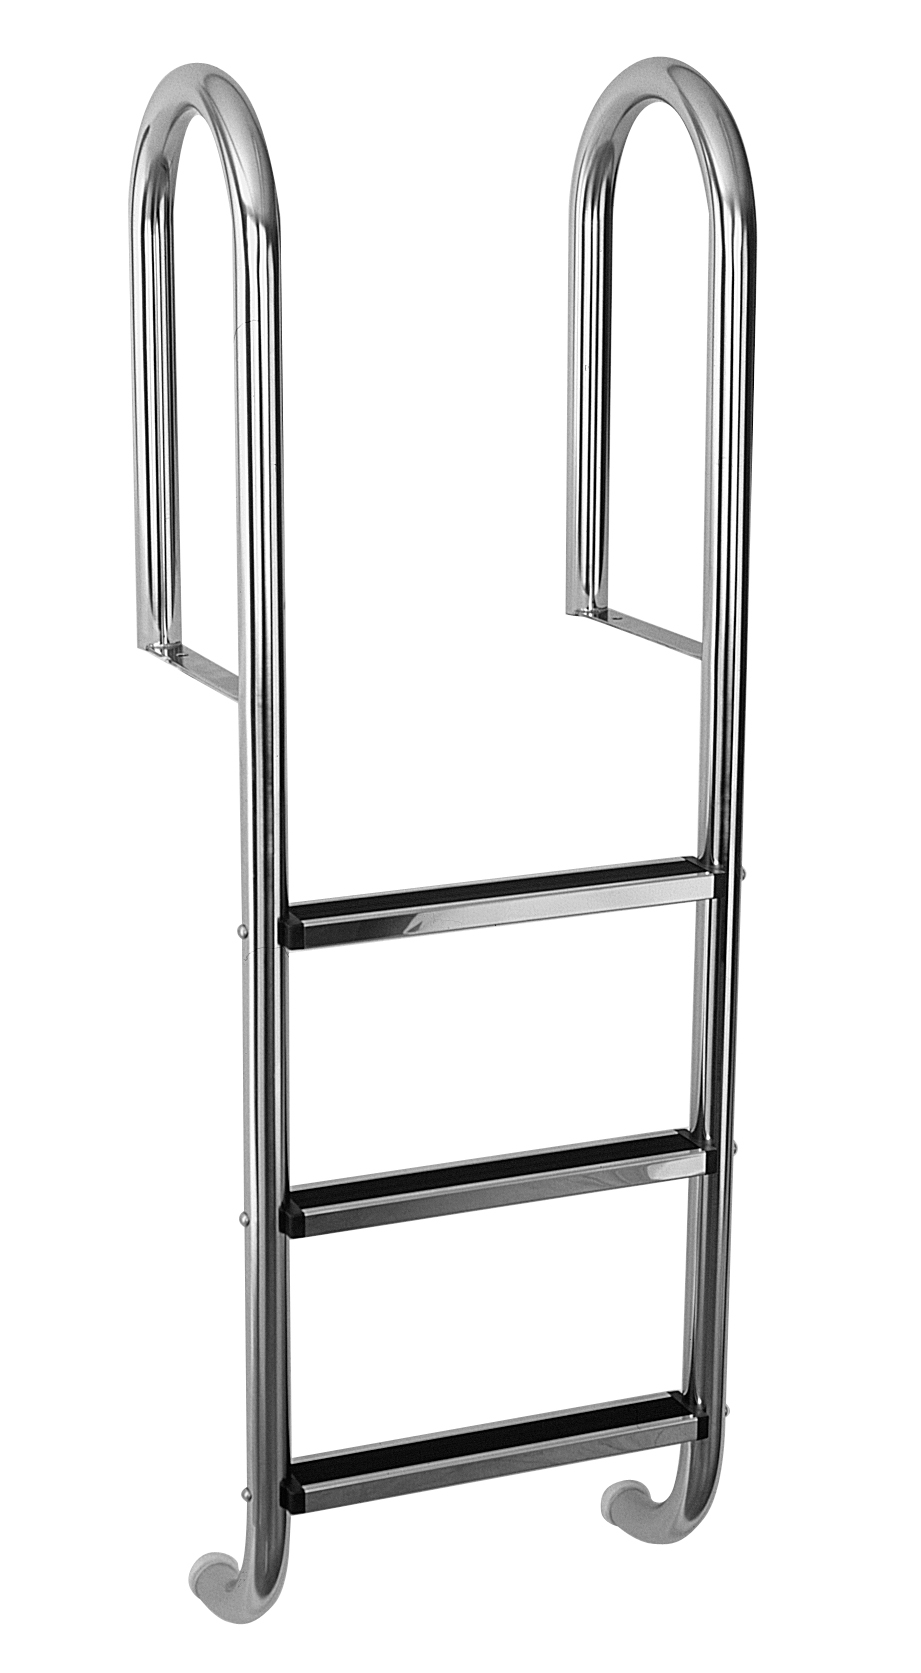 Pool Ladders And Rails   Official S.R.Smith Products